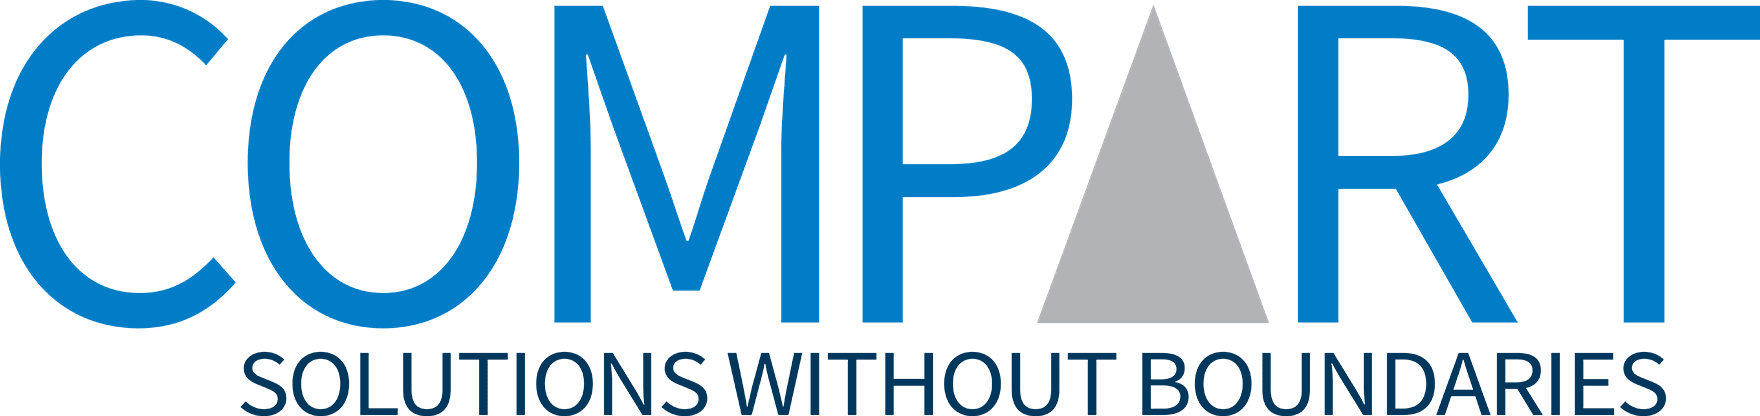 Compart - Solutions Without Boundaries